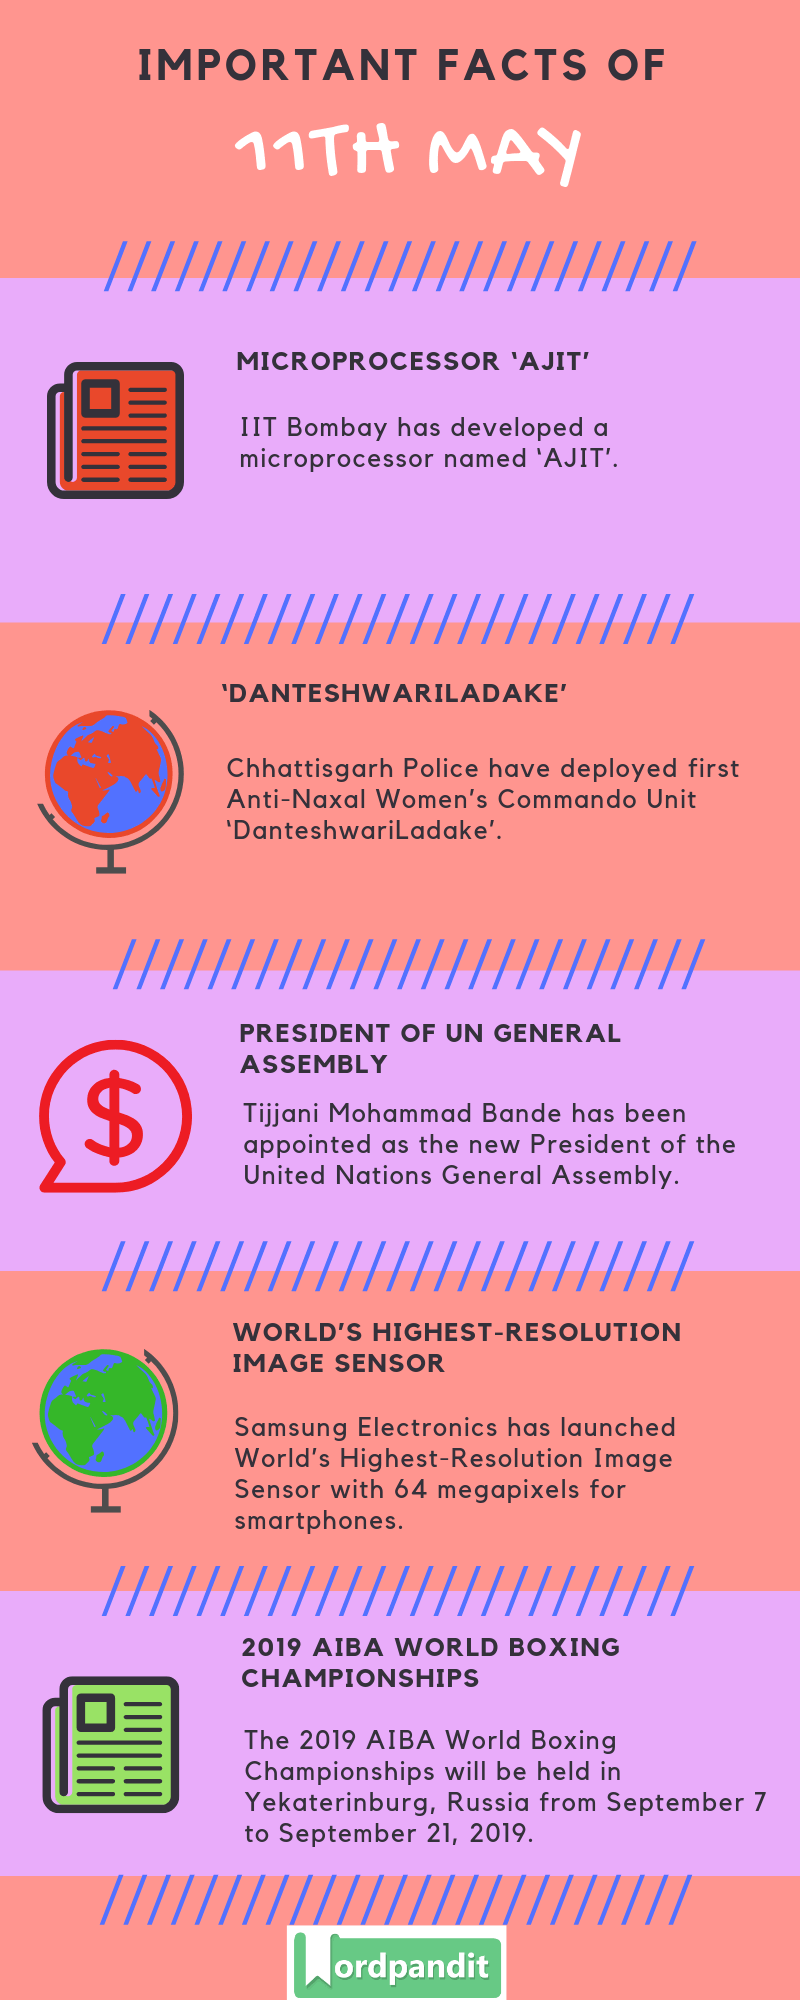 Daily Current Affairs 11 May 2019 Current Affairs Quiz 11 May 2019 Current Affairs Infographic